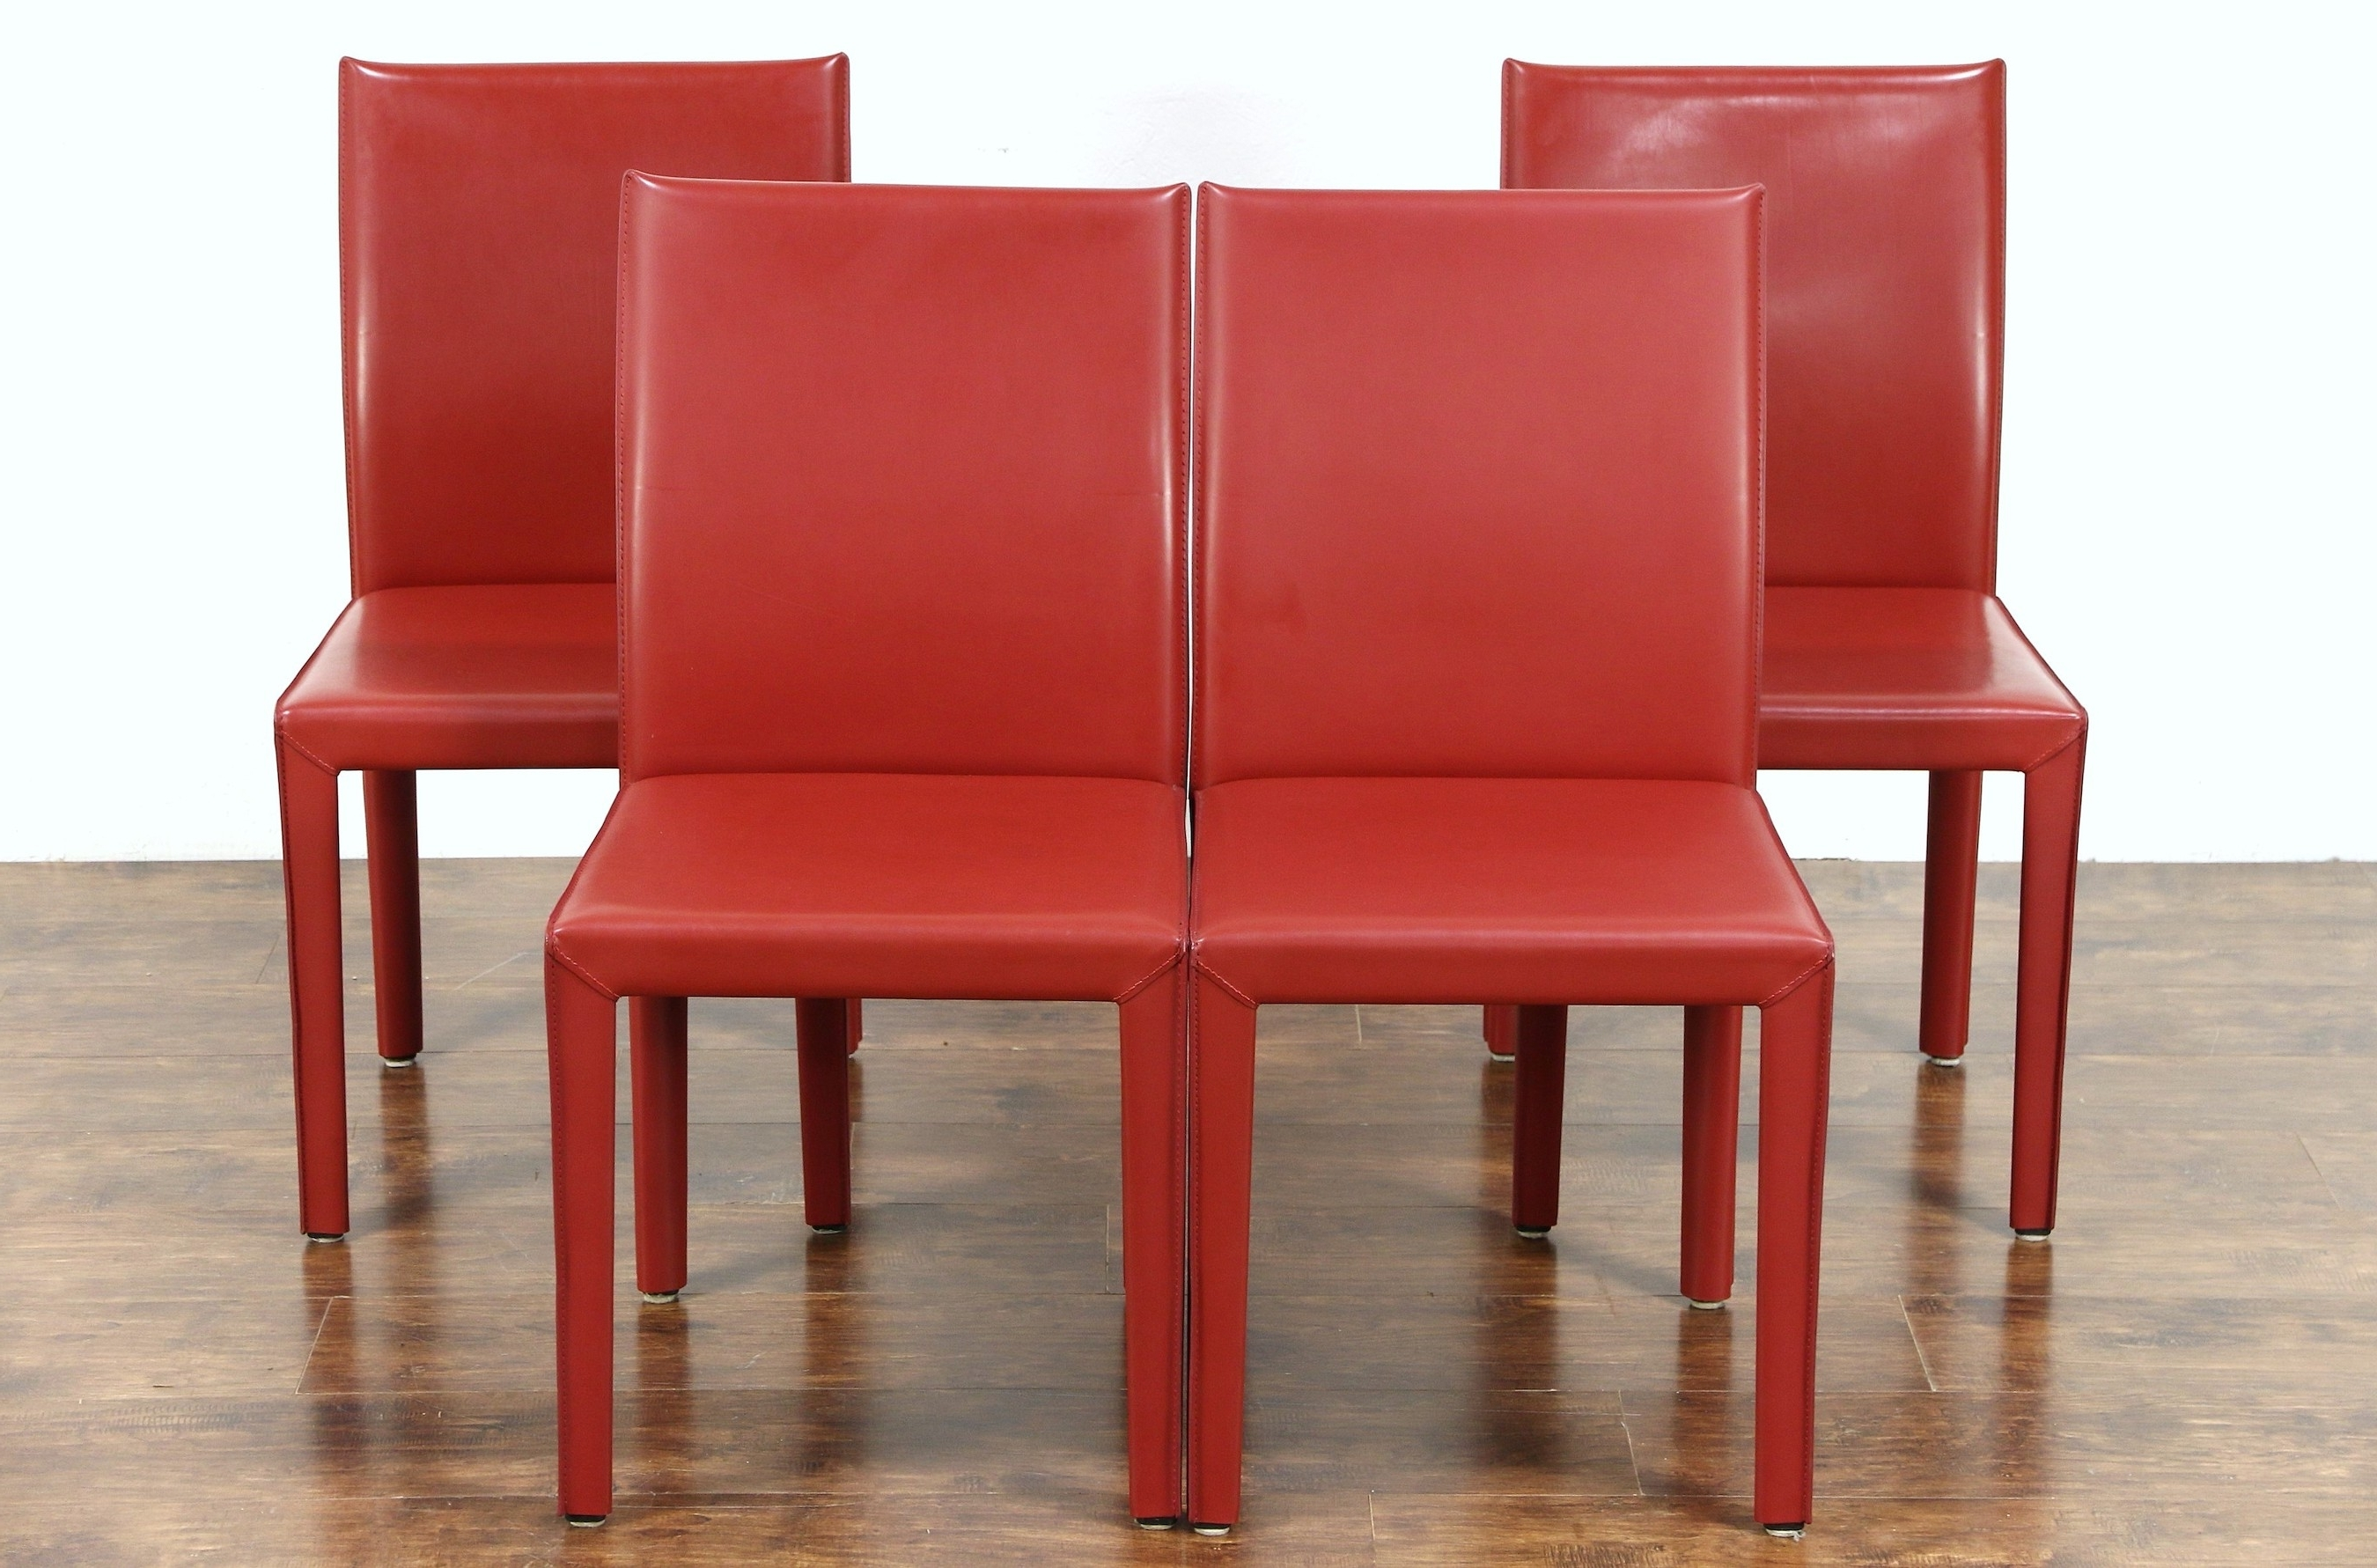 Newest Sold – Set Of 4 Red Leather Dining Or Game Table Chairs, Signed Regarding Red Leather Dining Chairs (View 14 of 25)